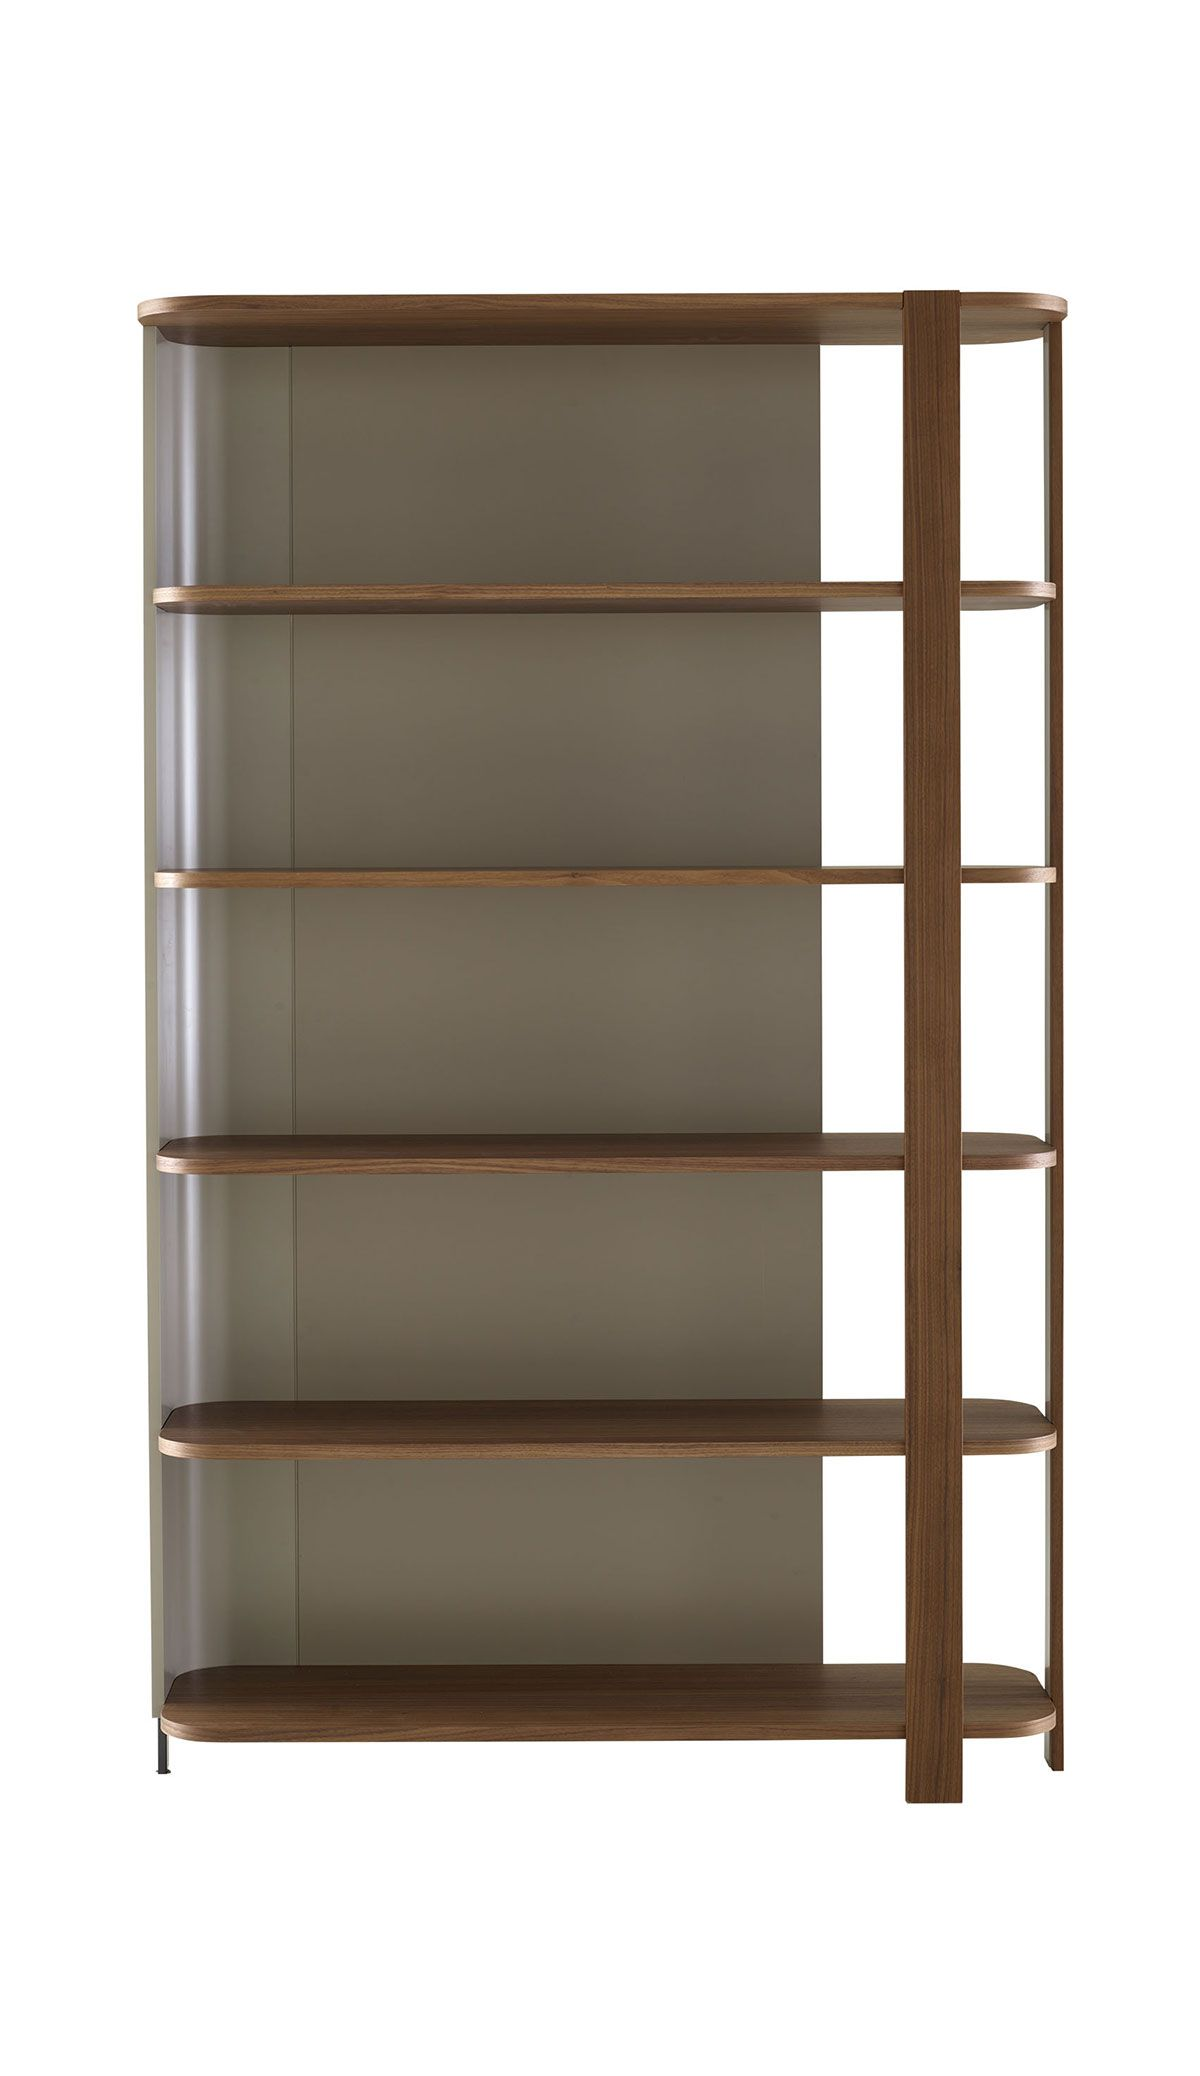 Postmoderne Bookshelf Designed By Eric Jourdan For Ligne Roset